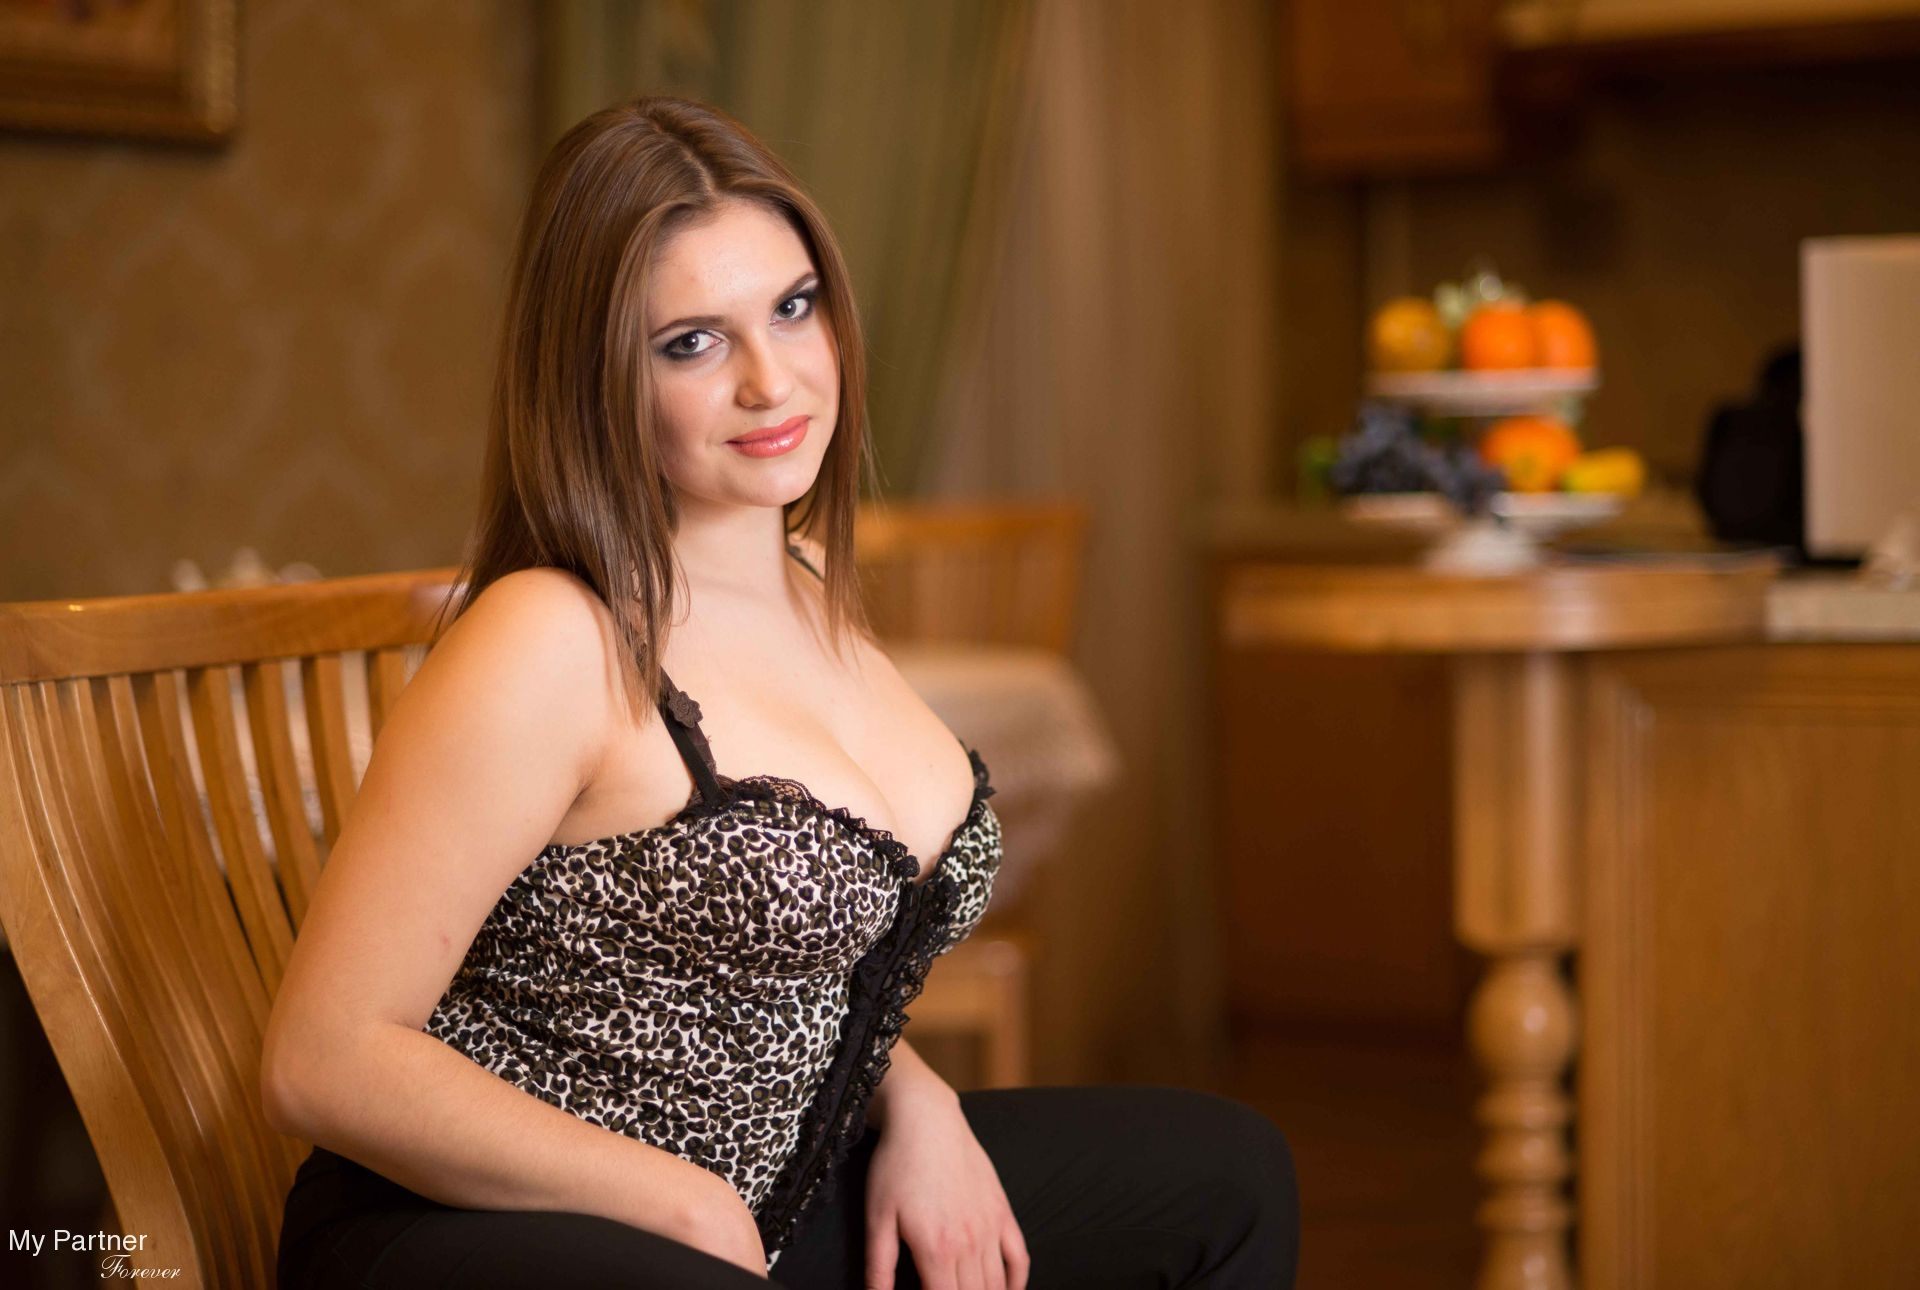 Dream One Love Meet thousand of European singles online